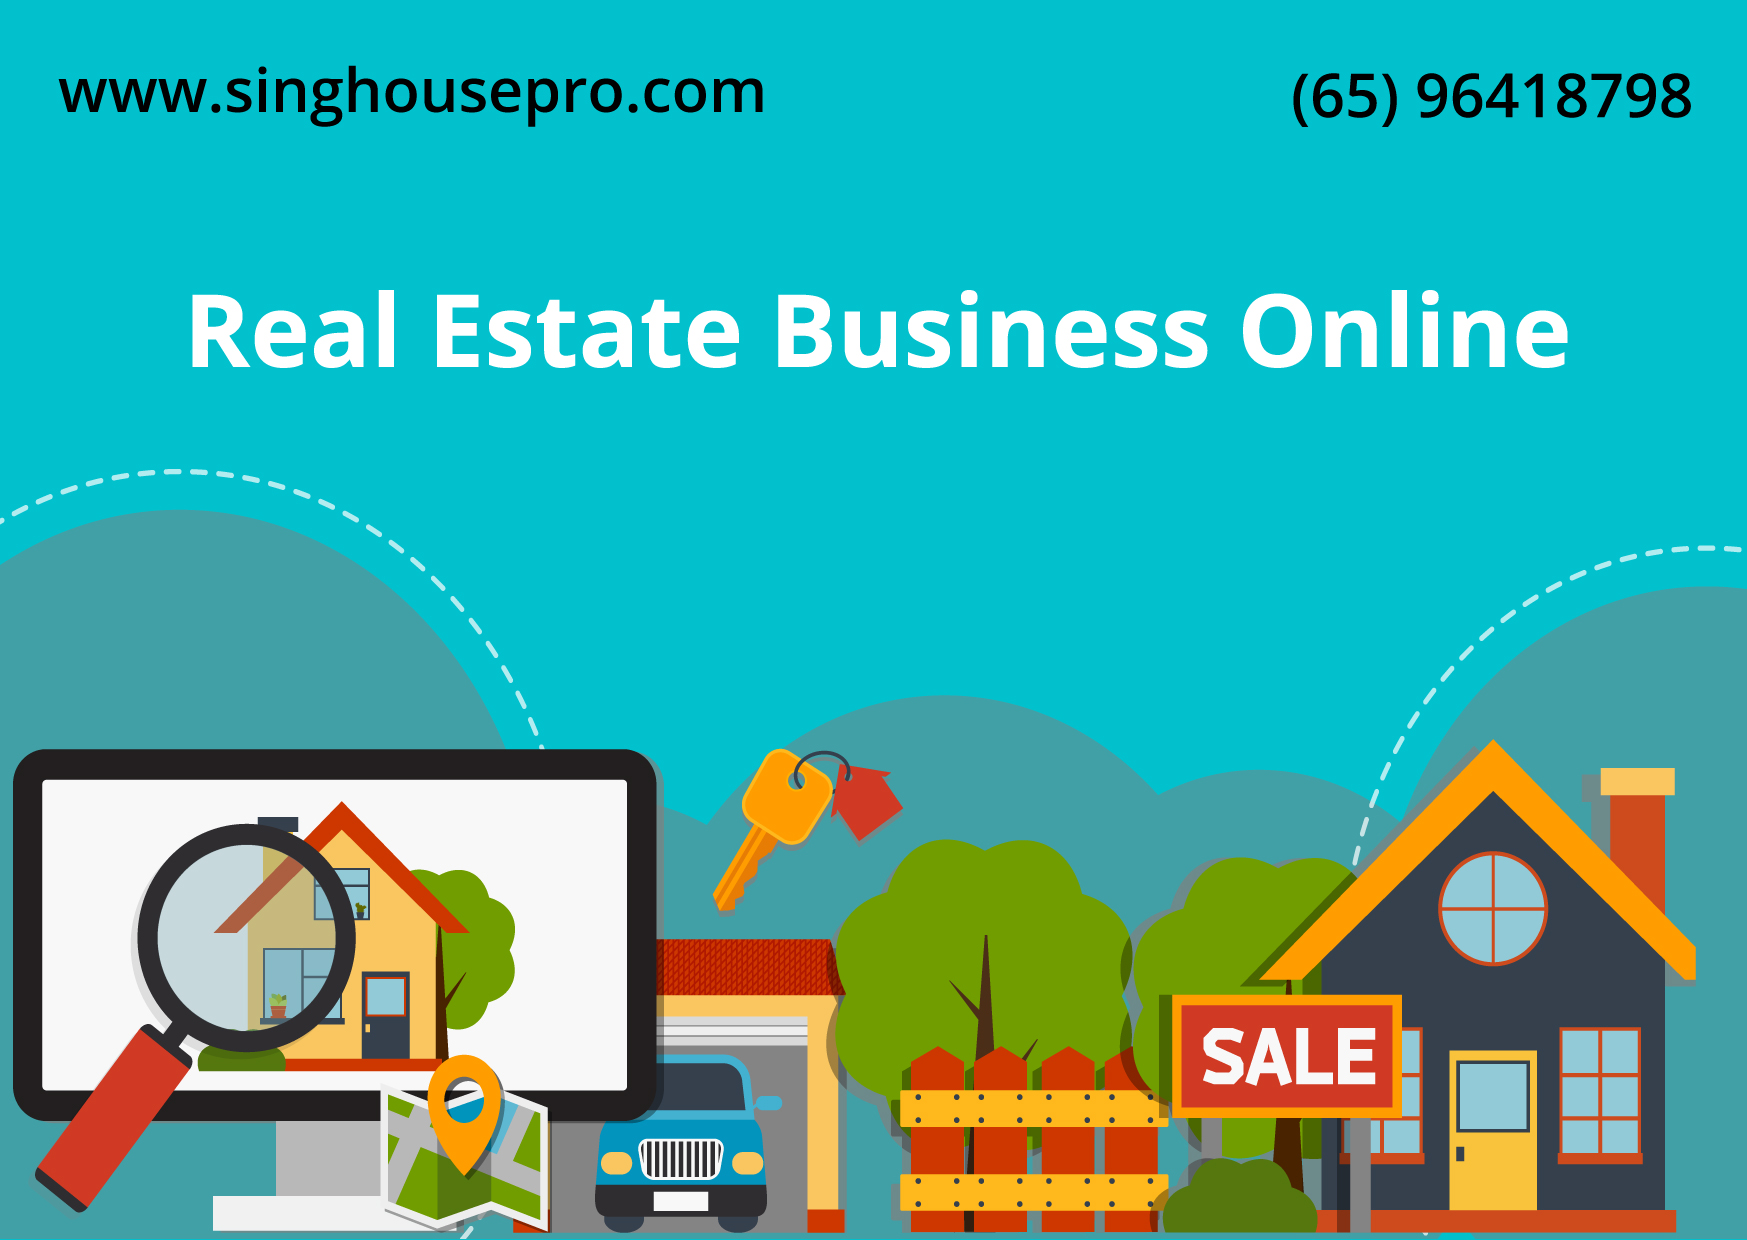 Top Tips on Improving Online Presence of Your Real Estate Business